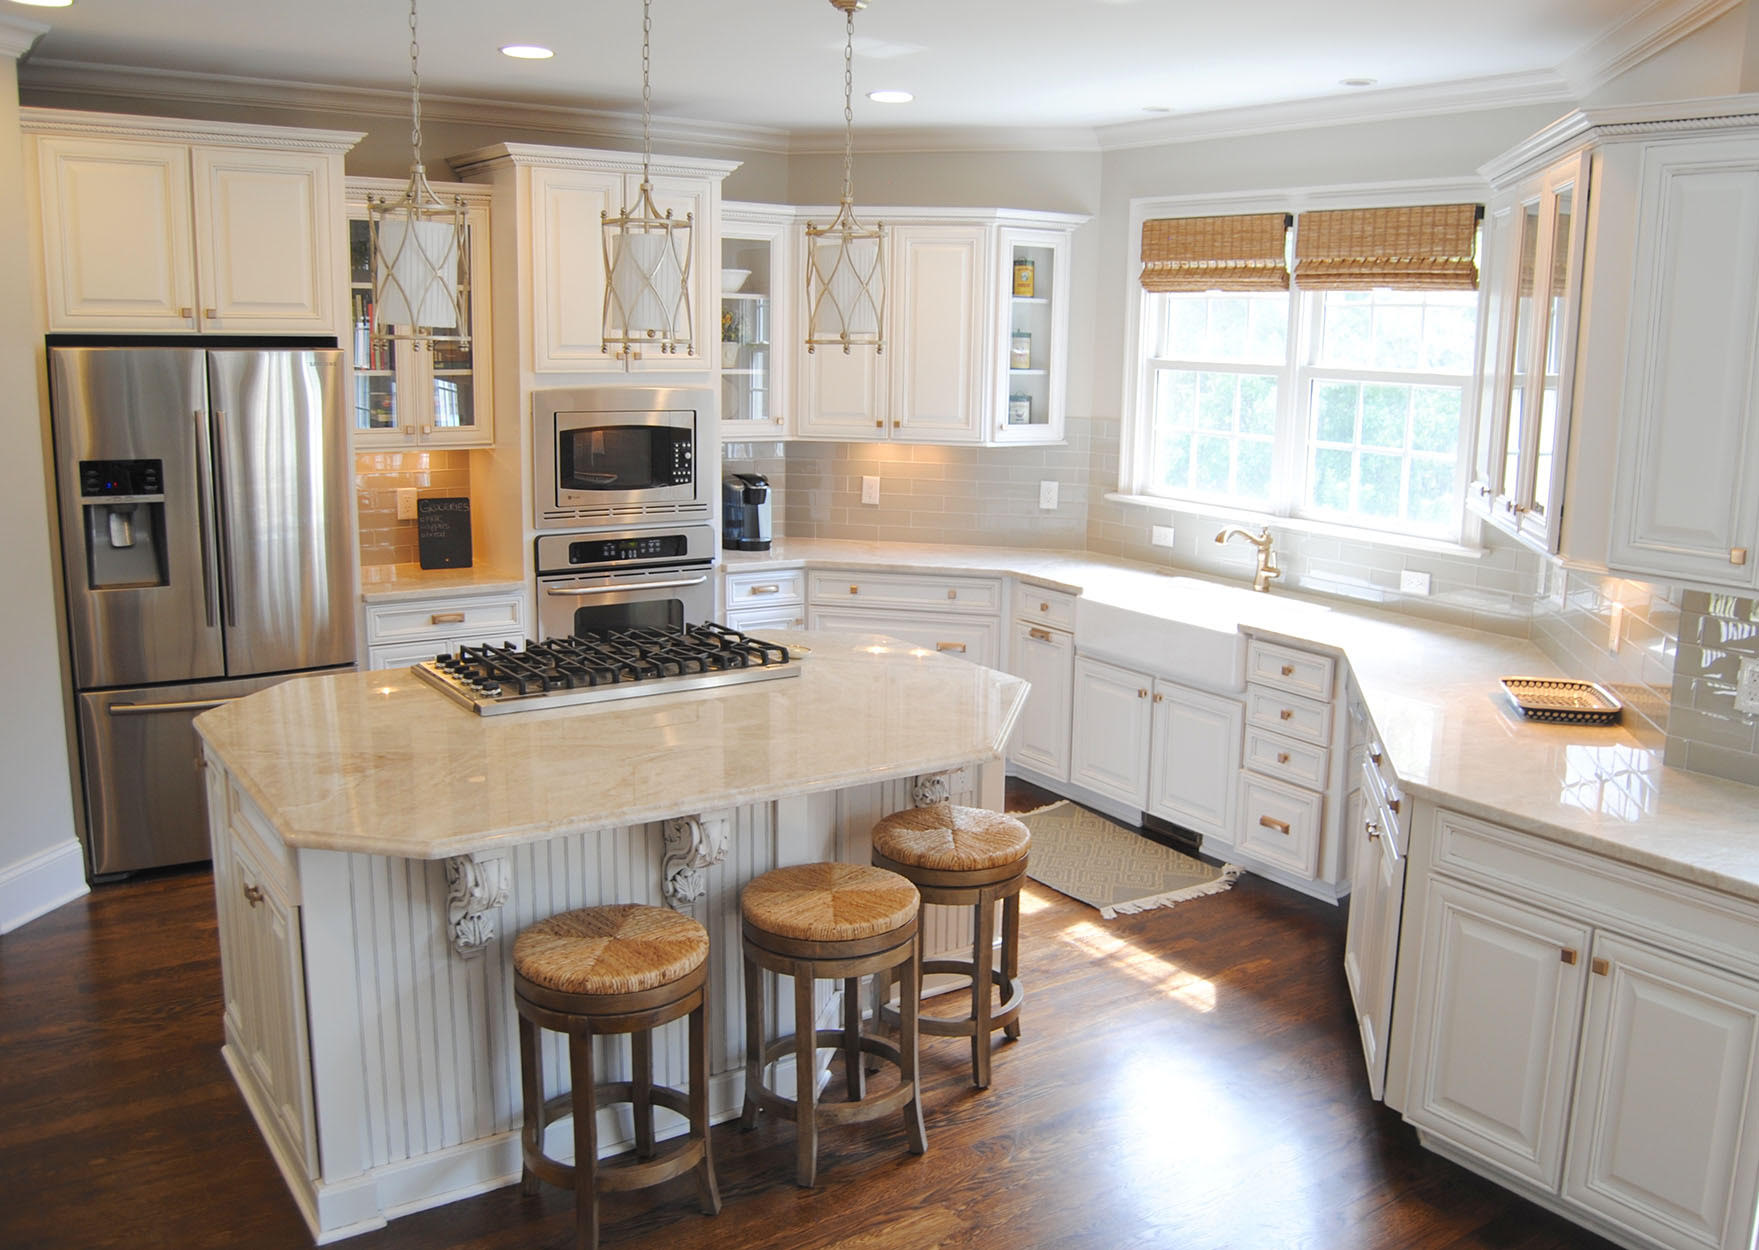 Granite Kitchen Special With Sink And Cabinets For Renovation Or Remodel